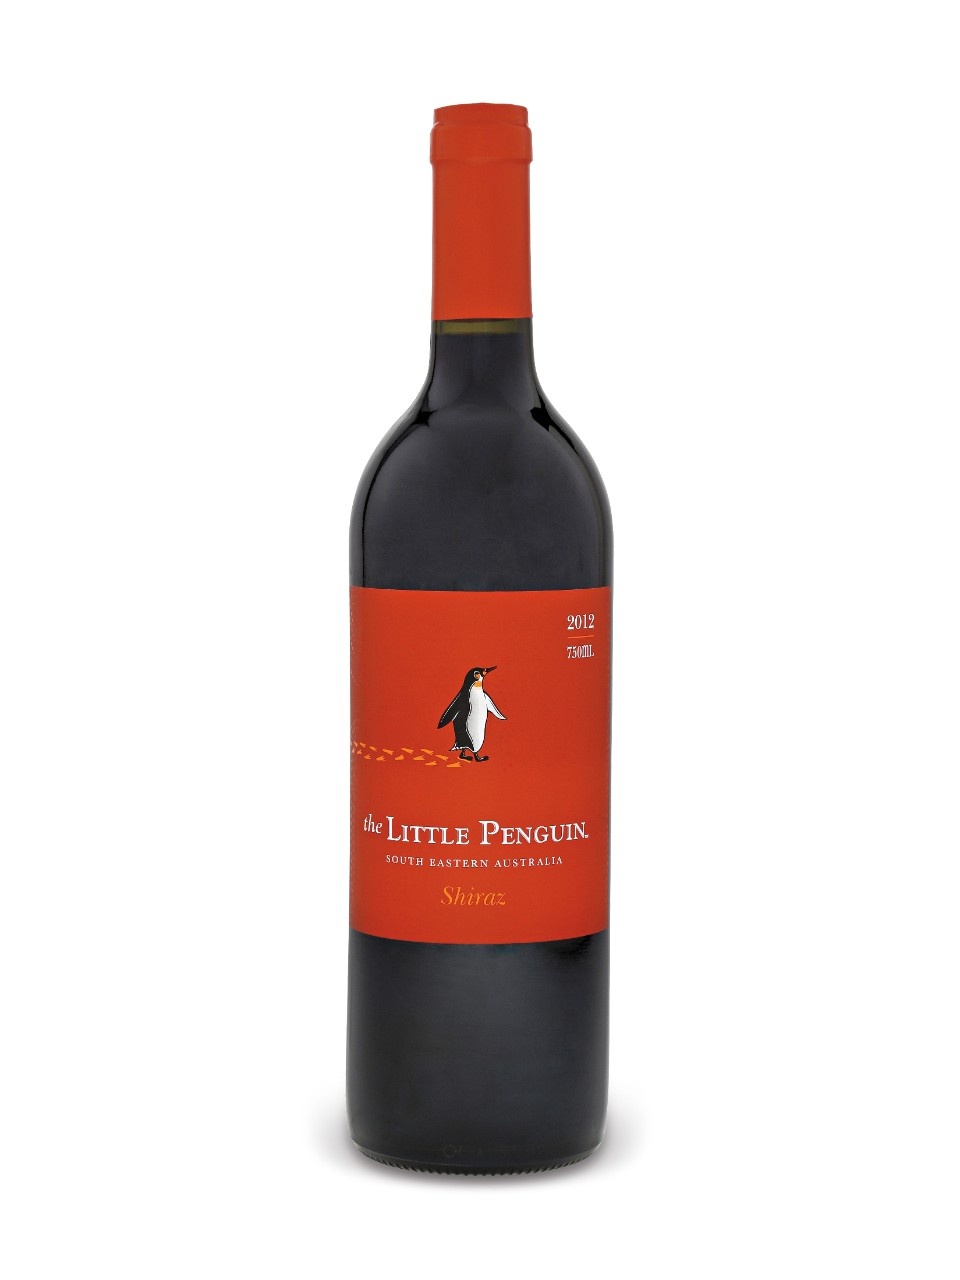 The Little Penguin Shiraz